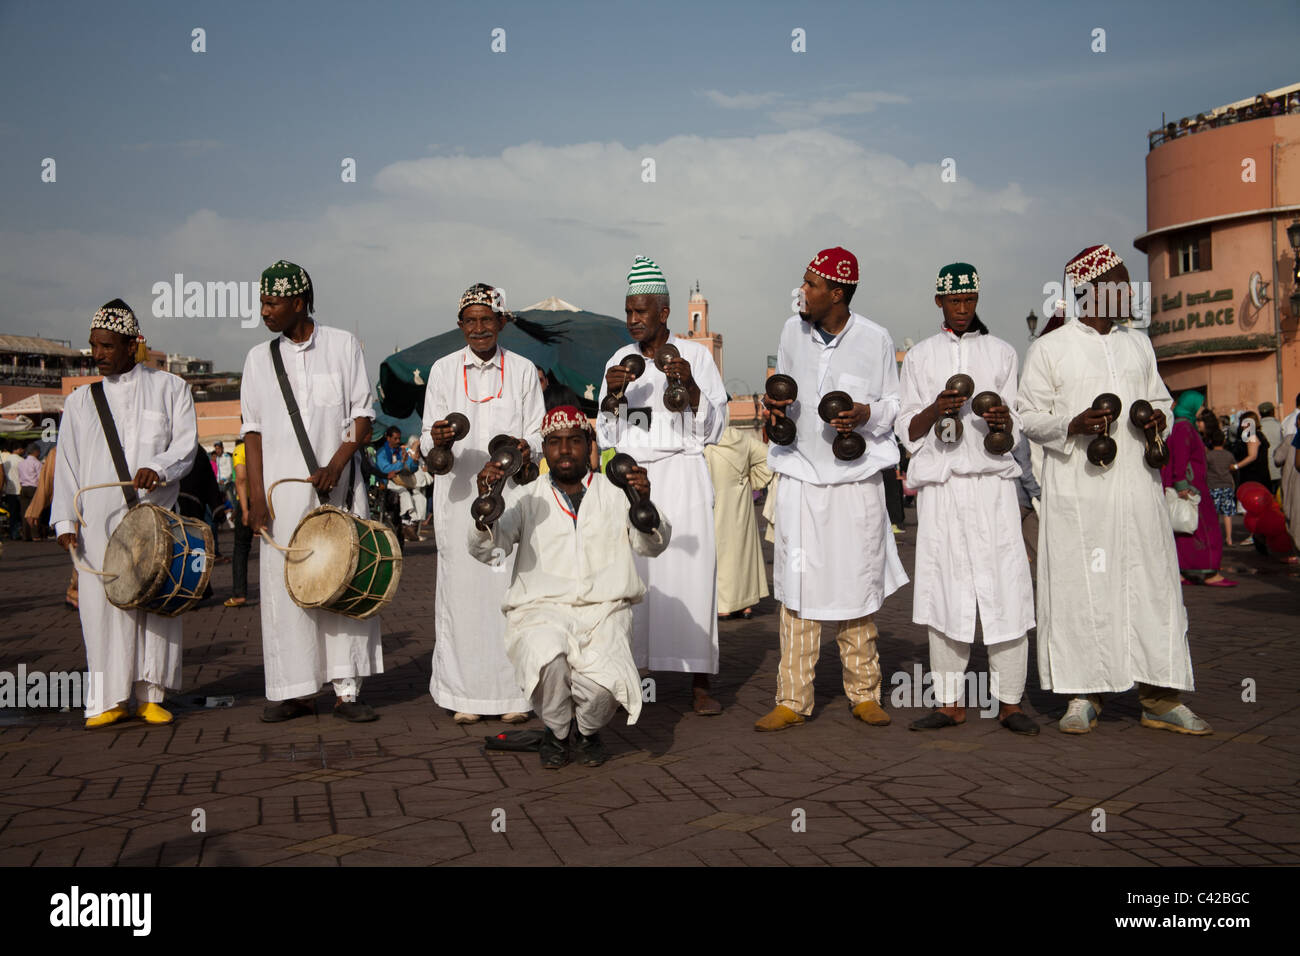 Street entertainers at the Djemaa el Fna Morocco - Stock Image